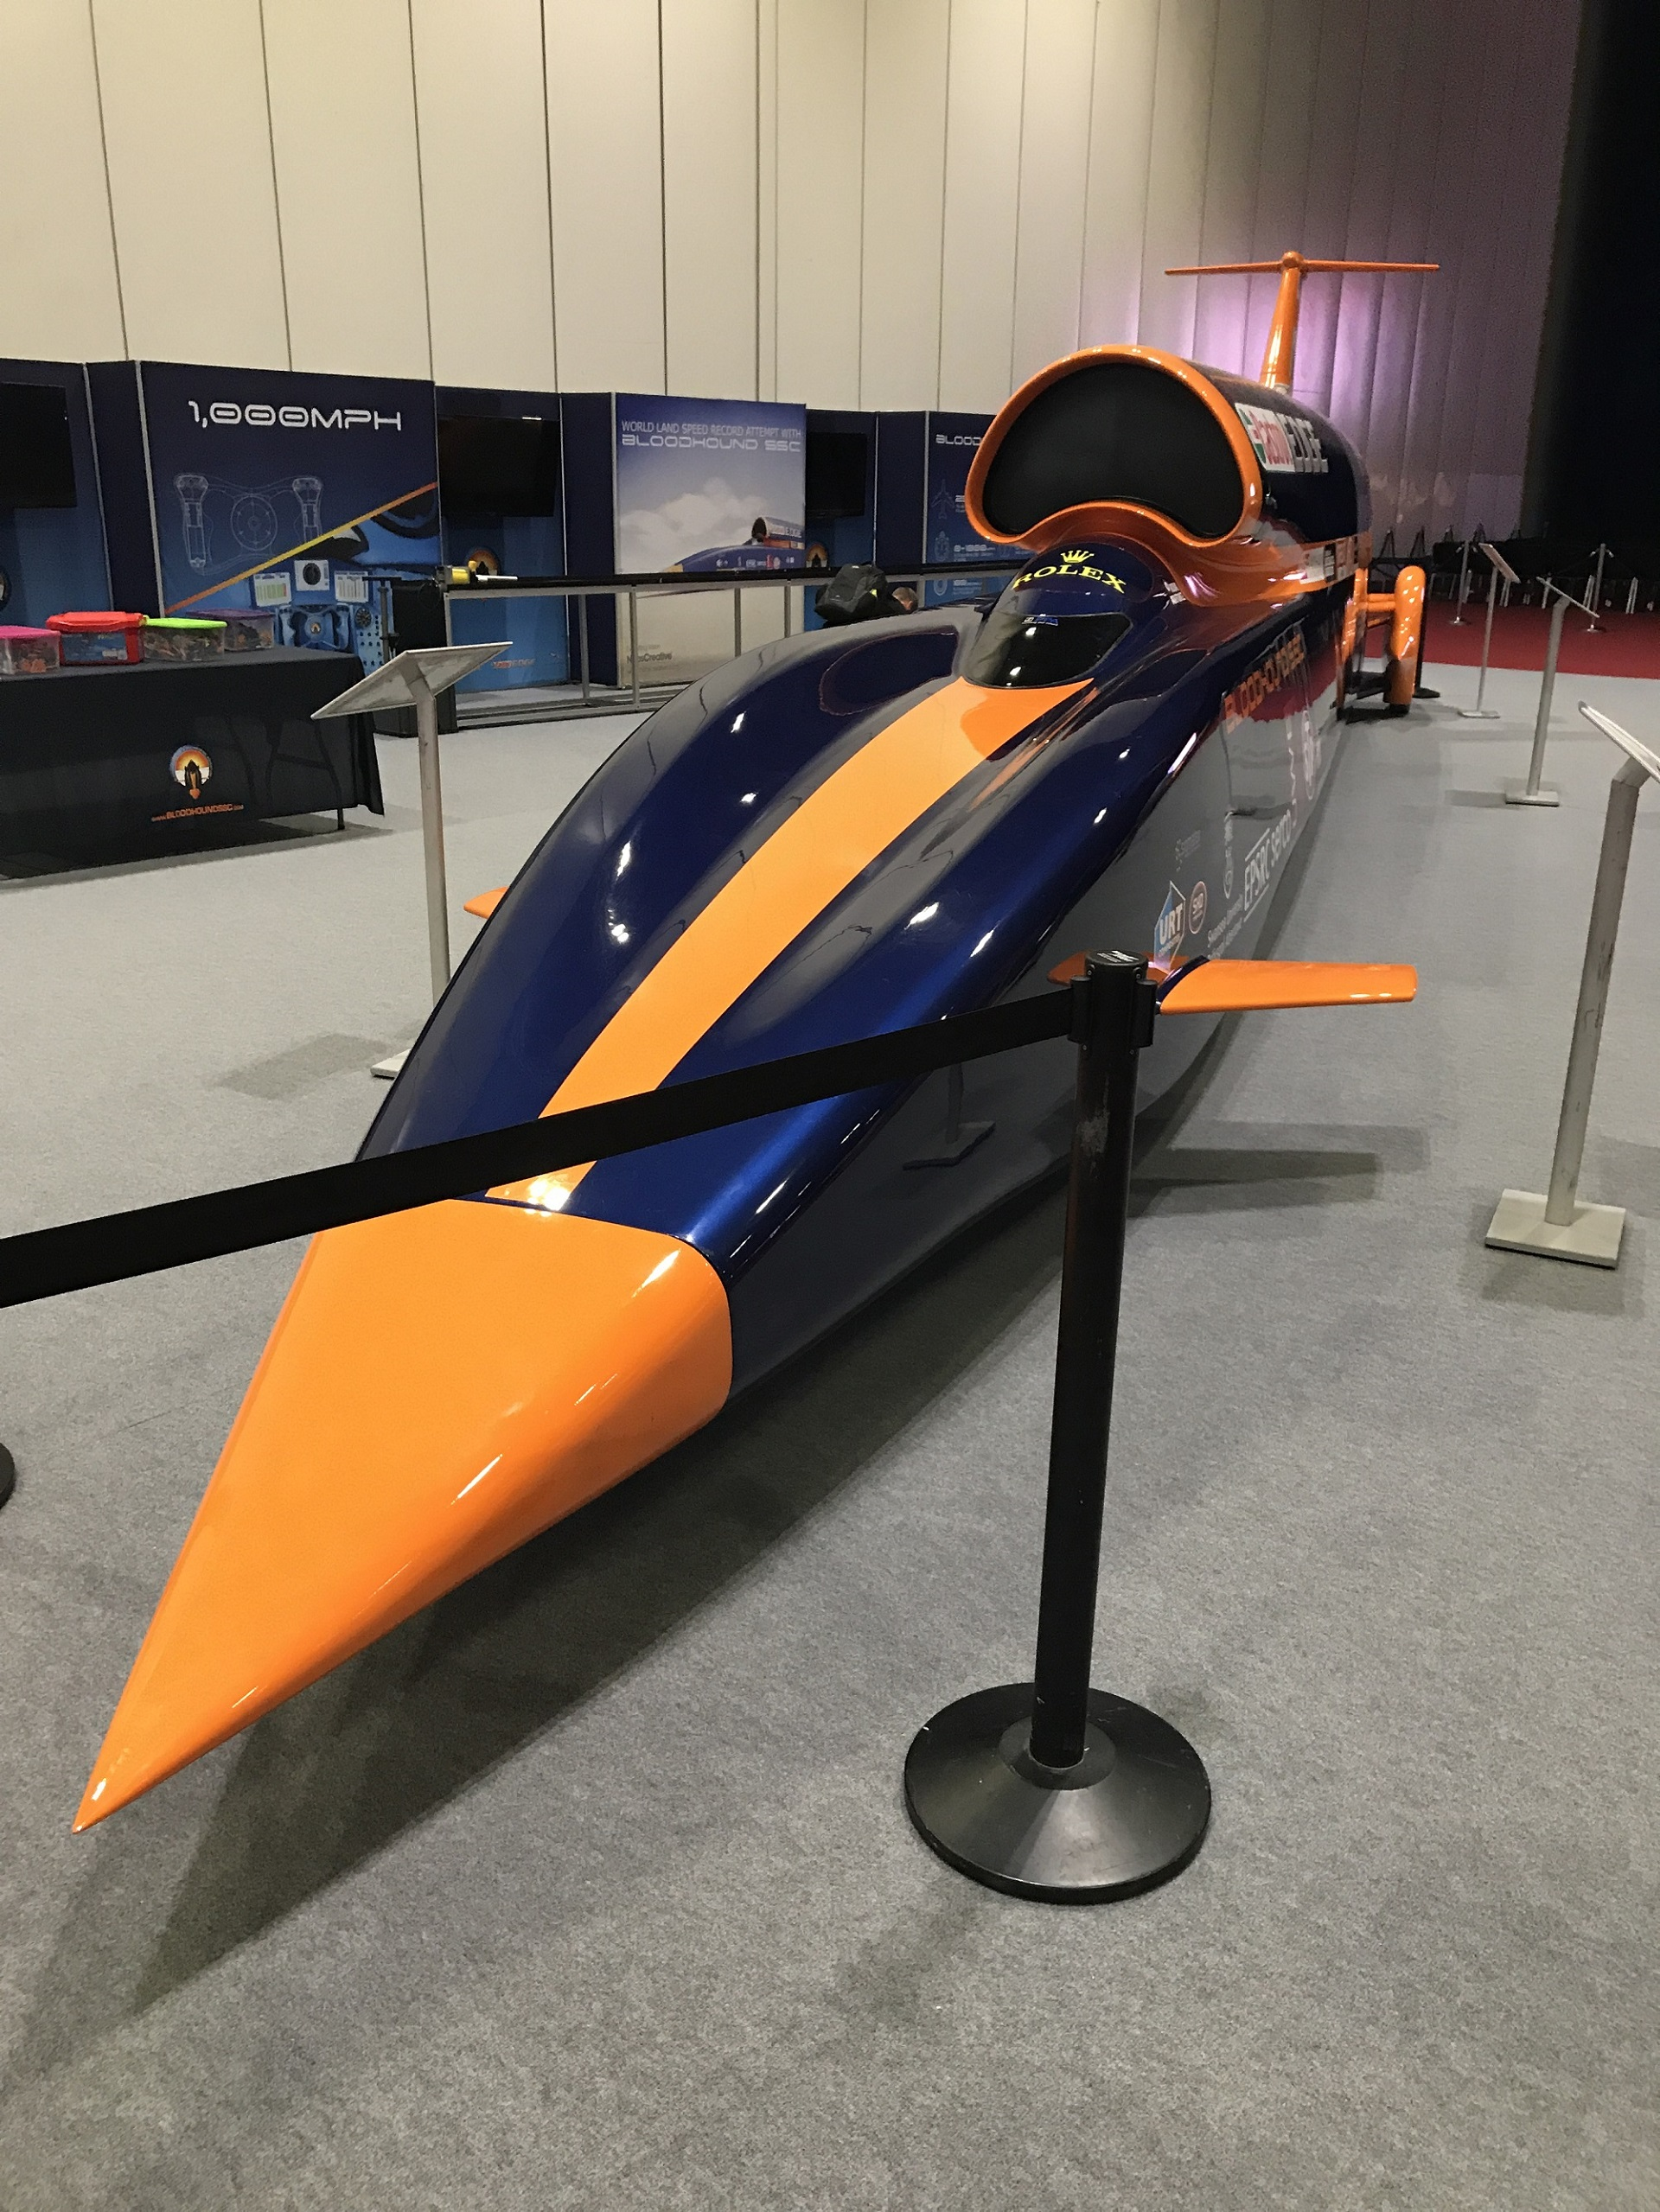 A model of the Bloodhound Supersonic Car